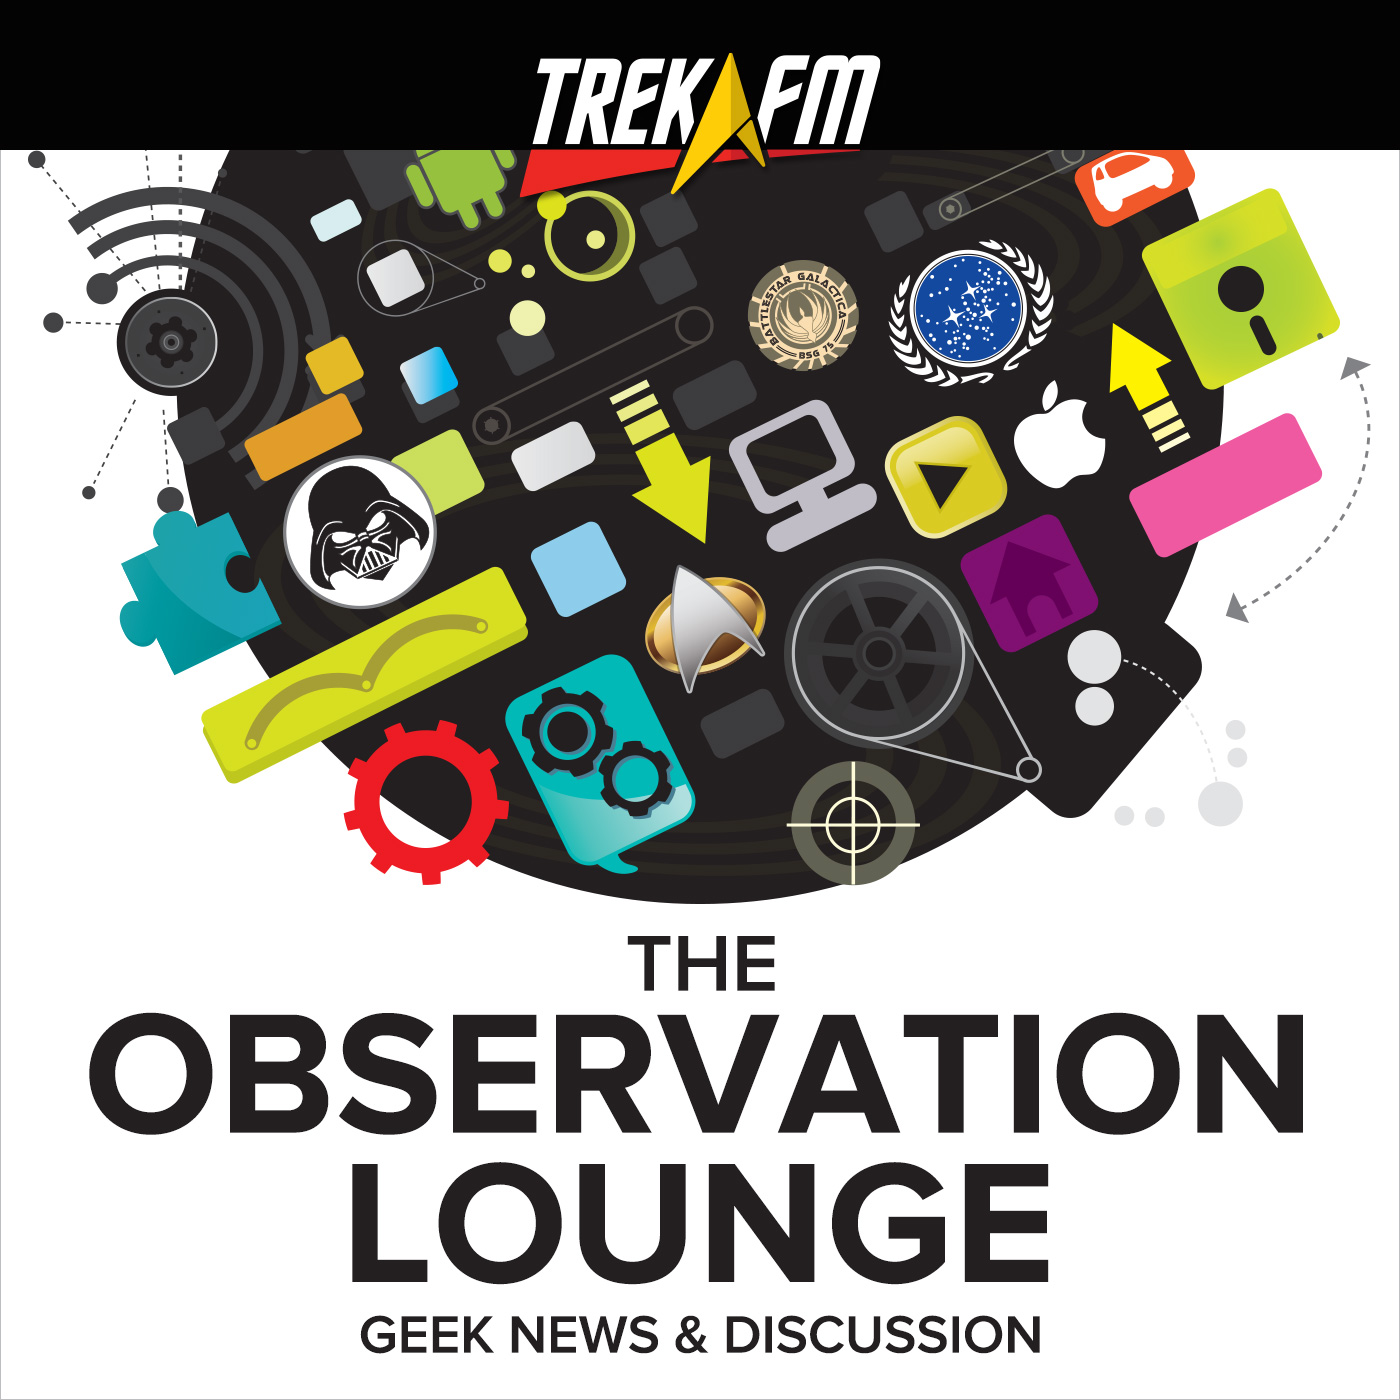 The Observation Lounge: Geek News and Discussion